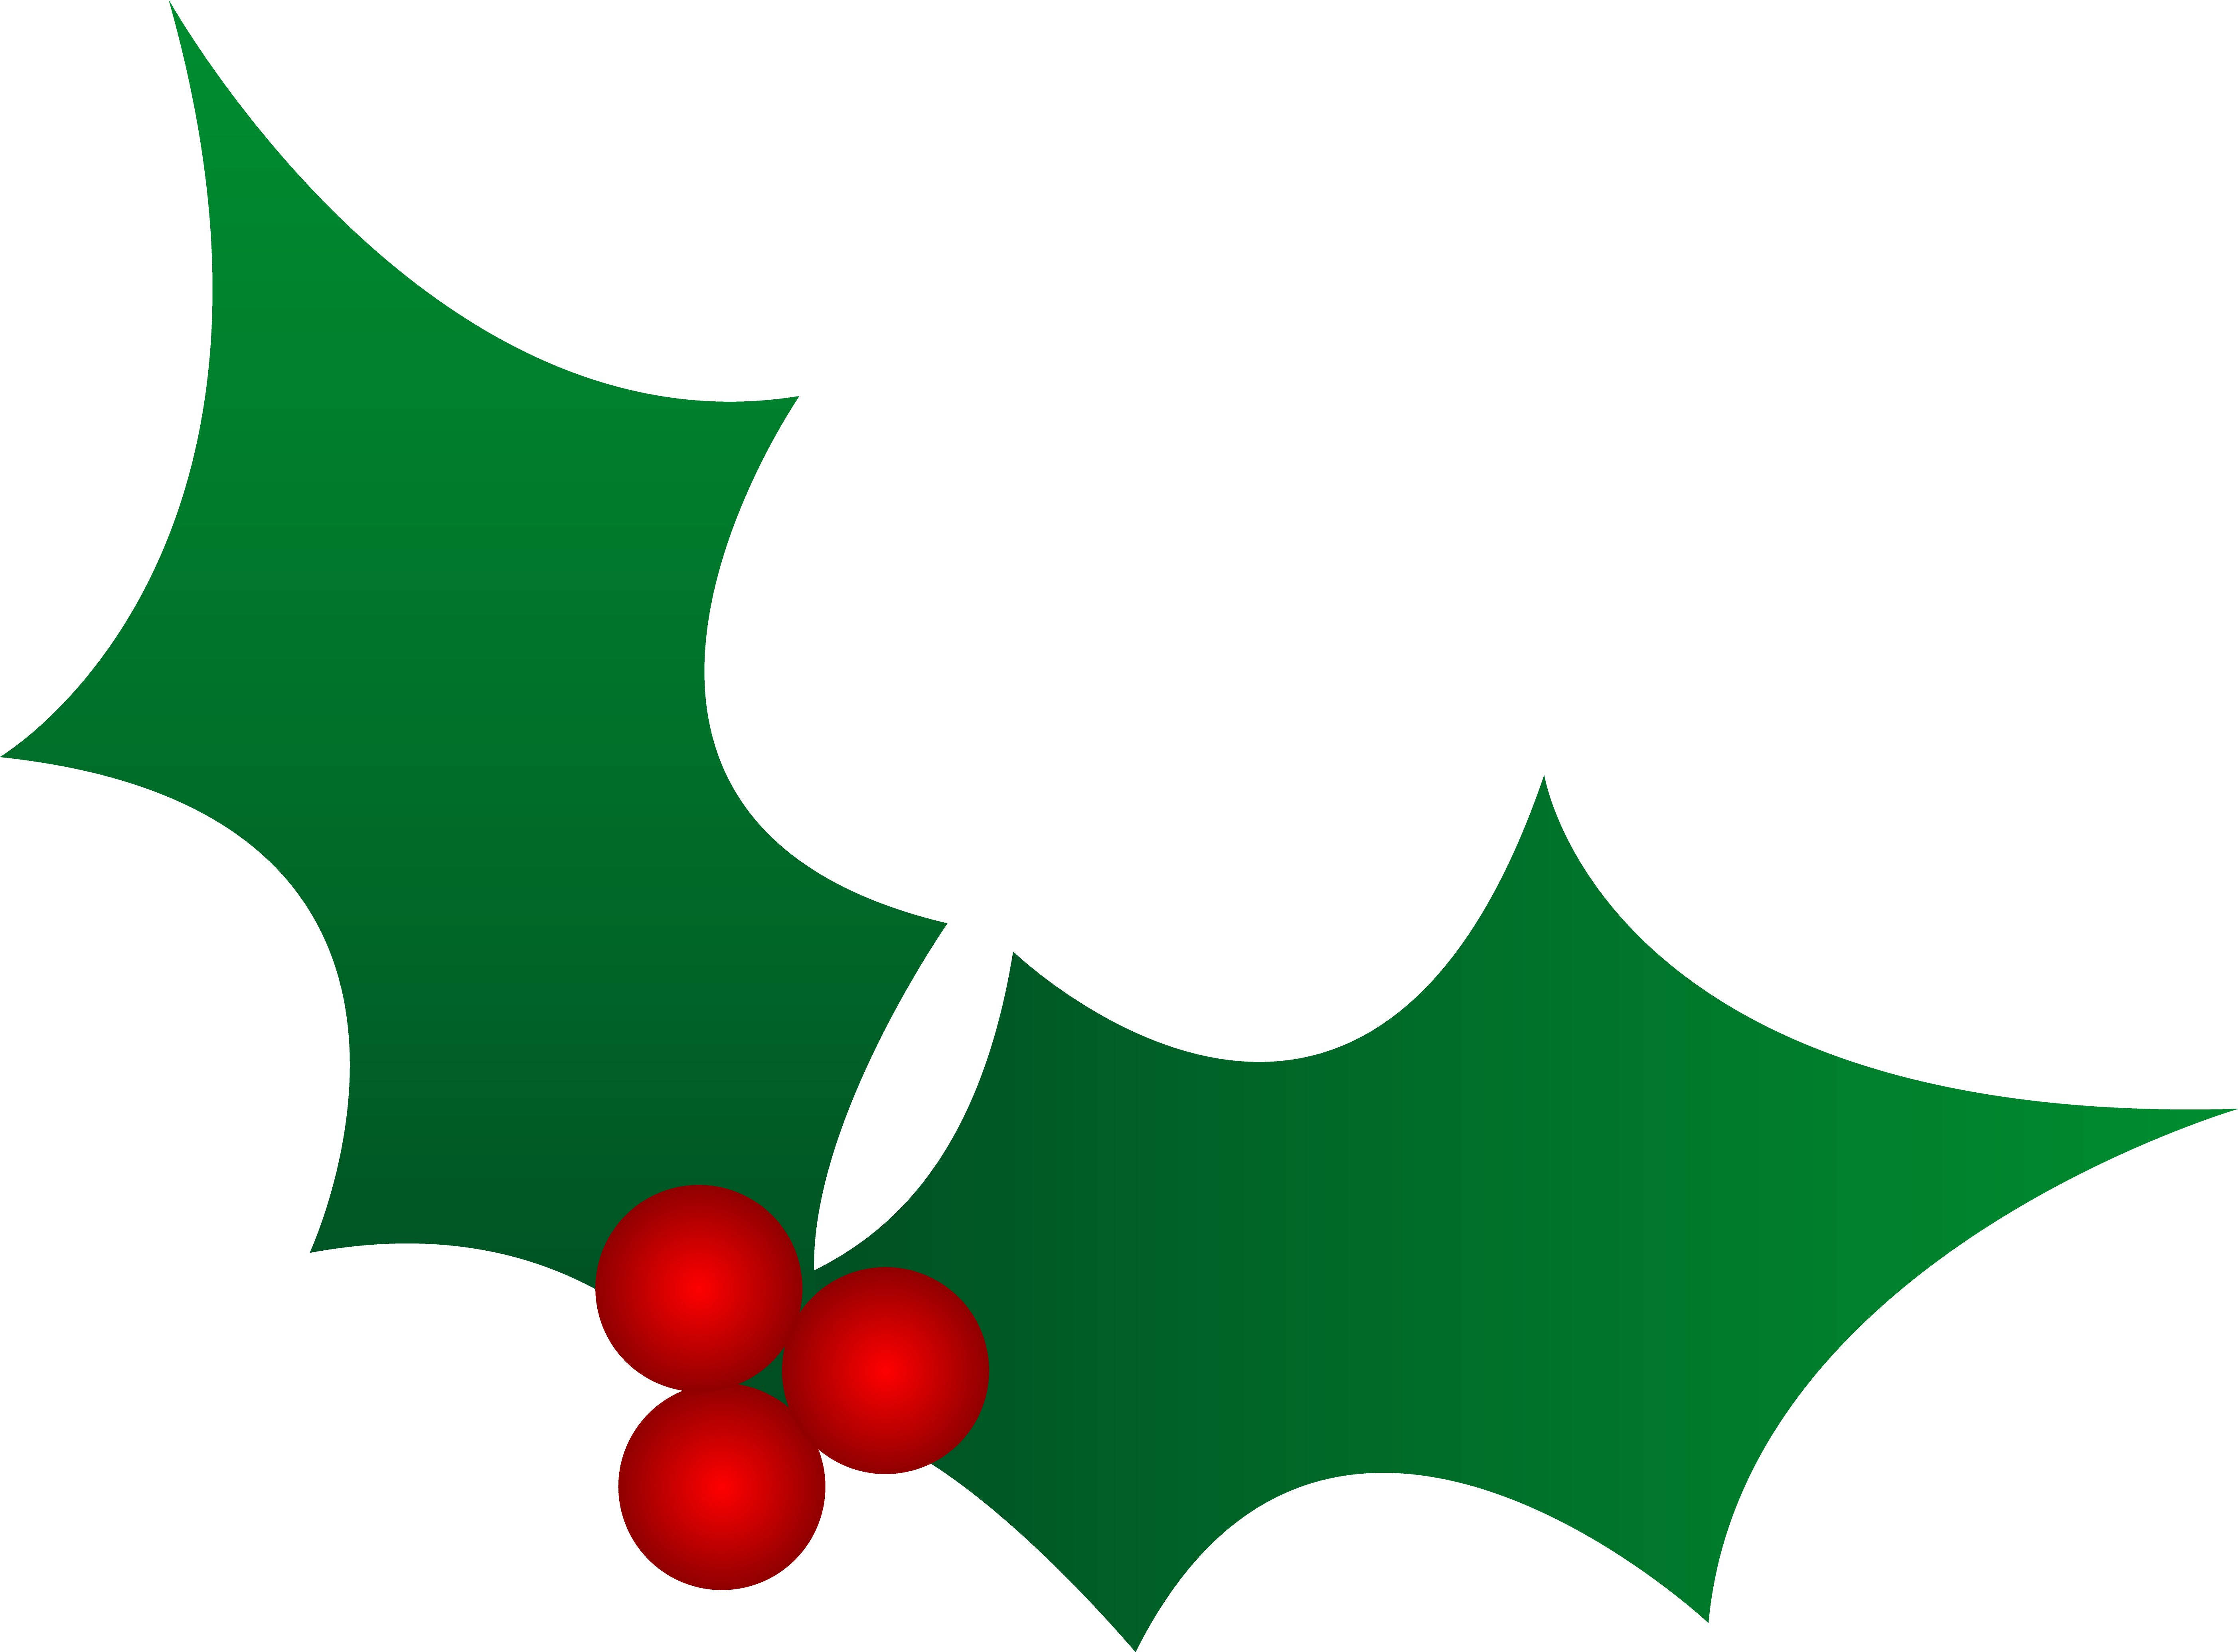 Holiday clipart #1, Download drawings